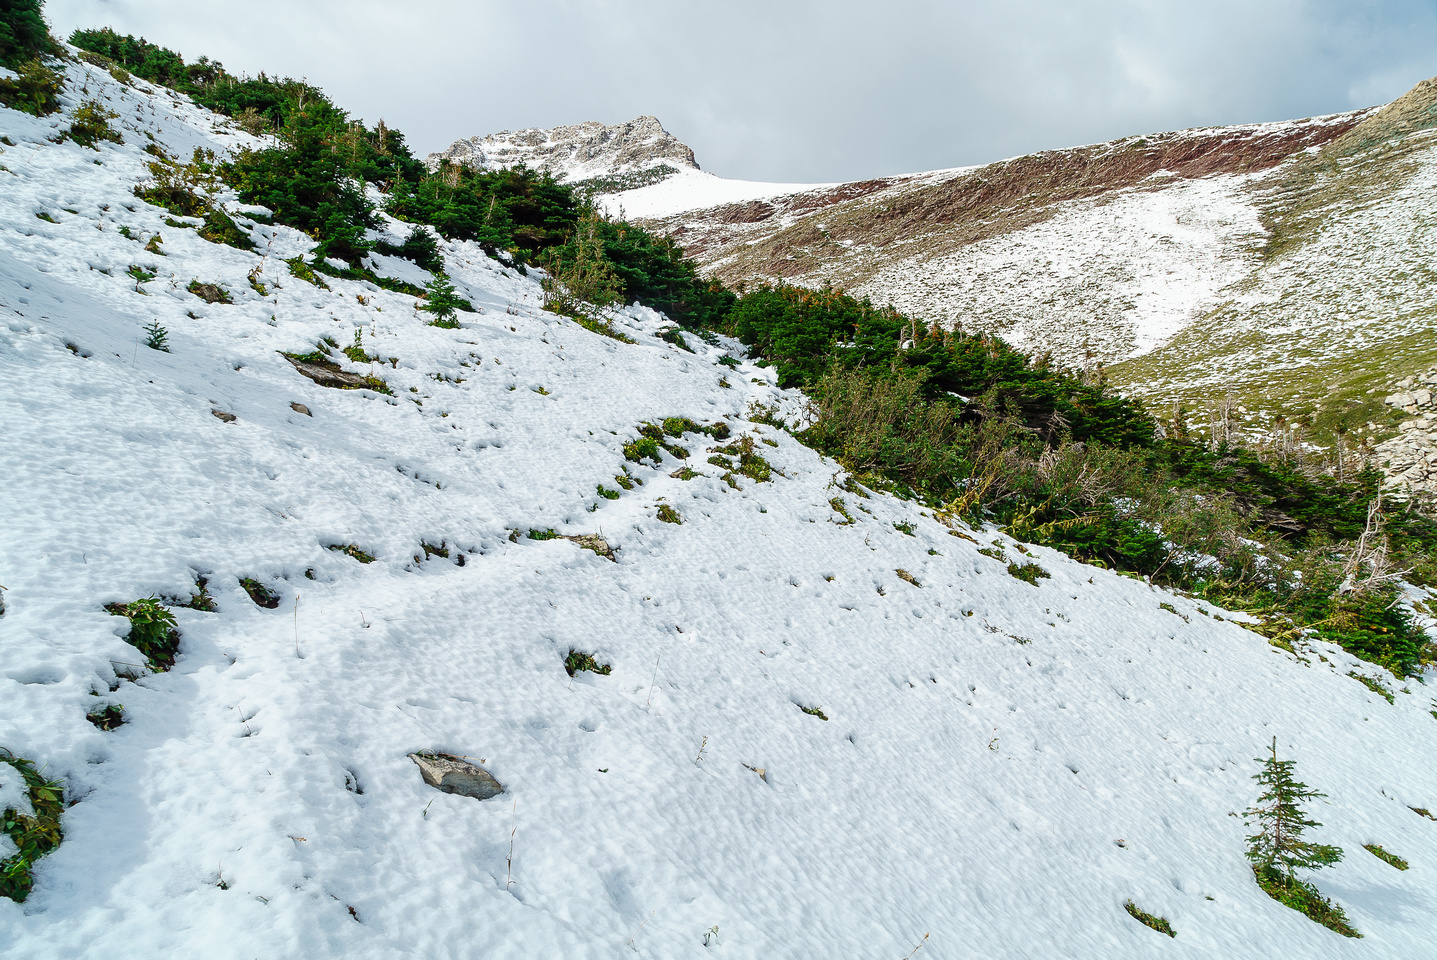 Following the faint trail for a wee bit further - Nugara's route is plastered in snow above me here.